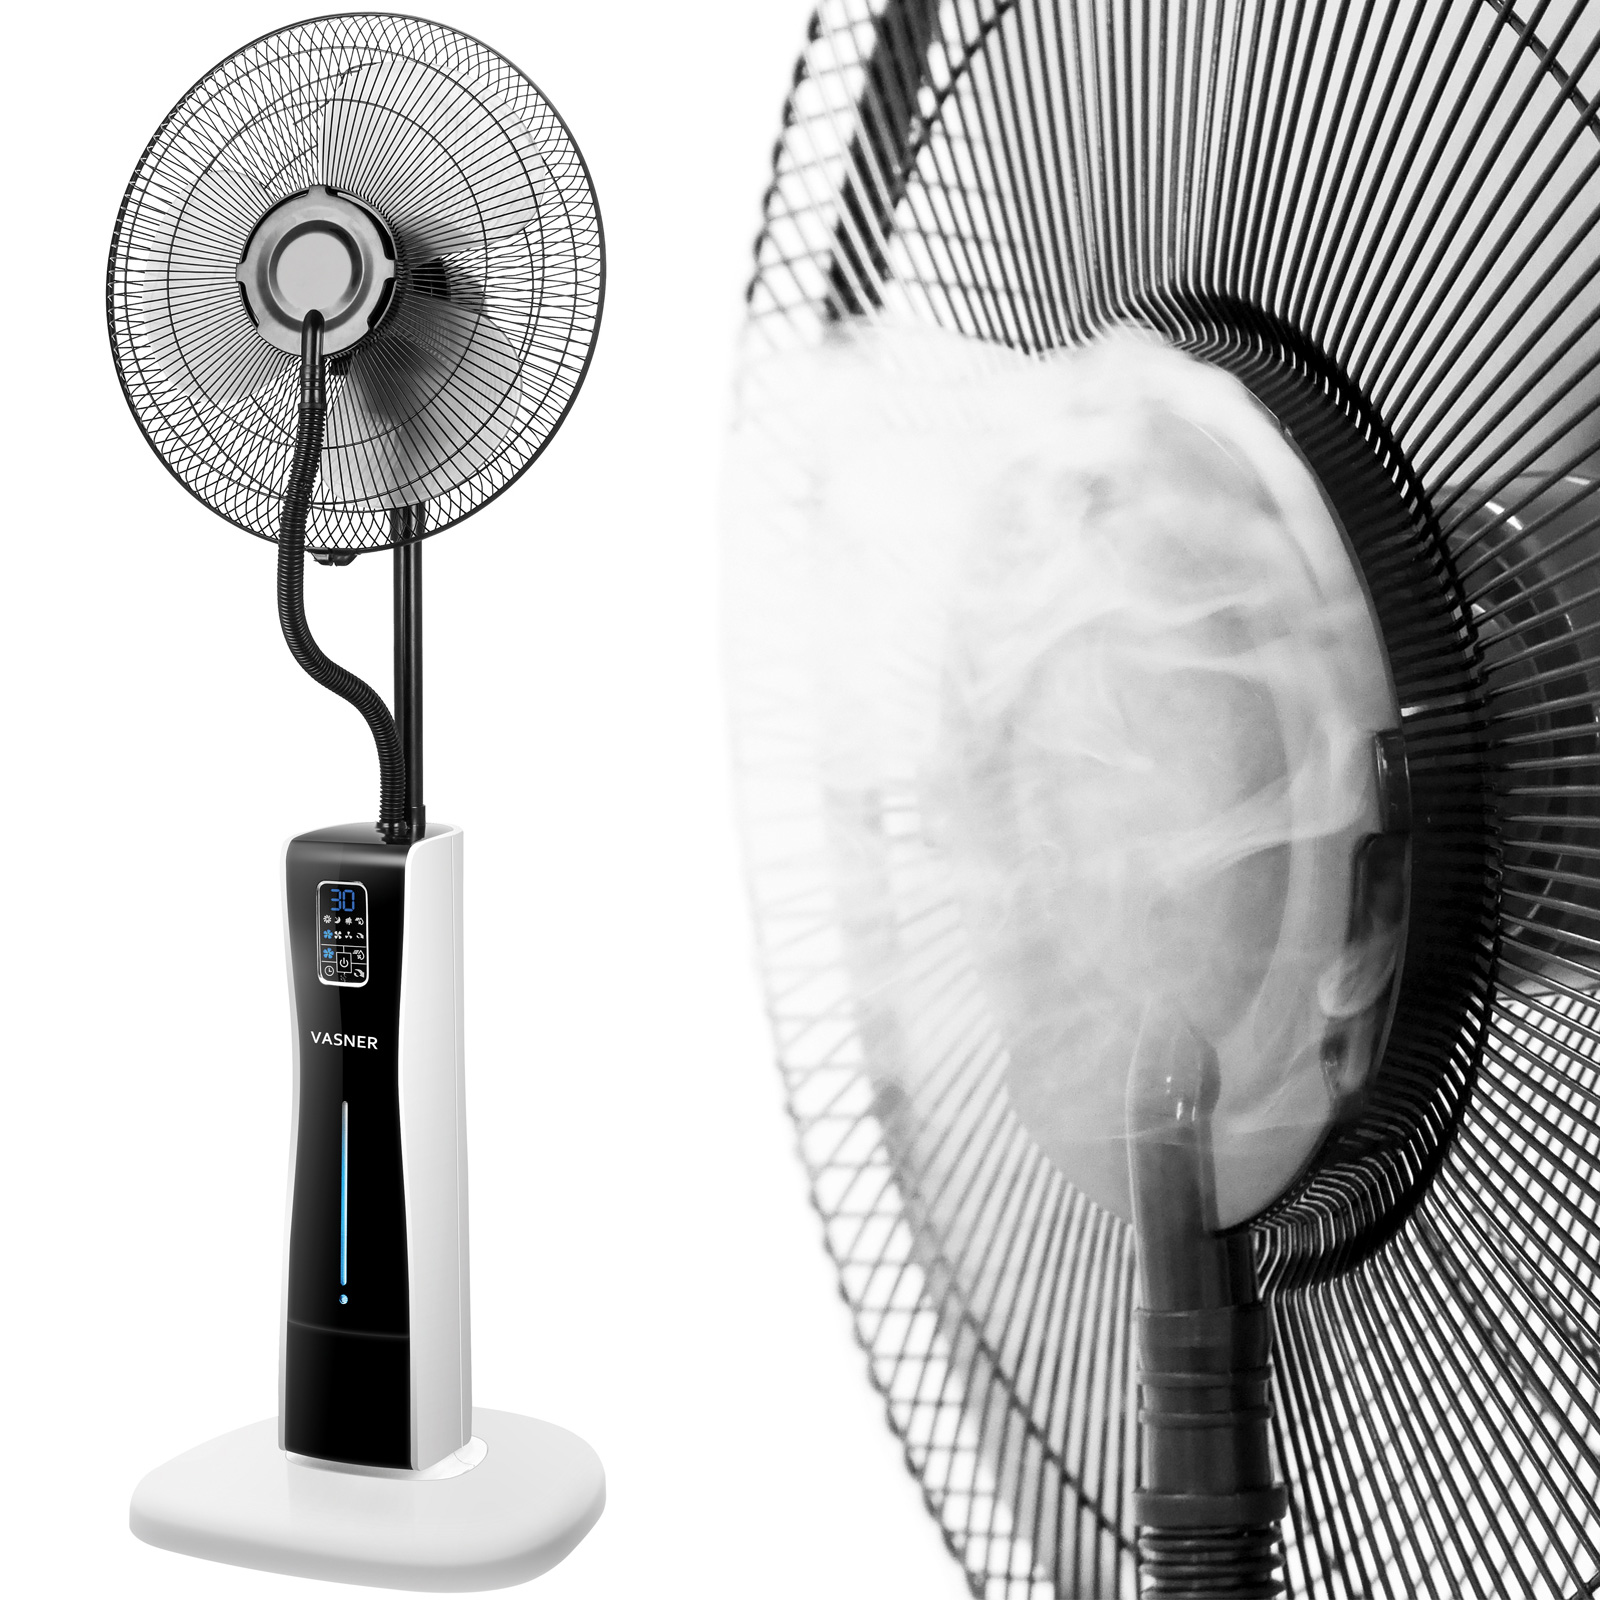 Optimale Schlaftemperatur Durch VASNER Cooly Standventilator Mit  Fernbedienung